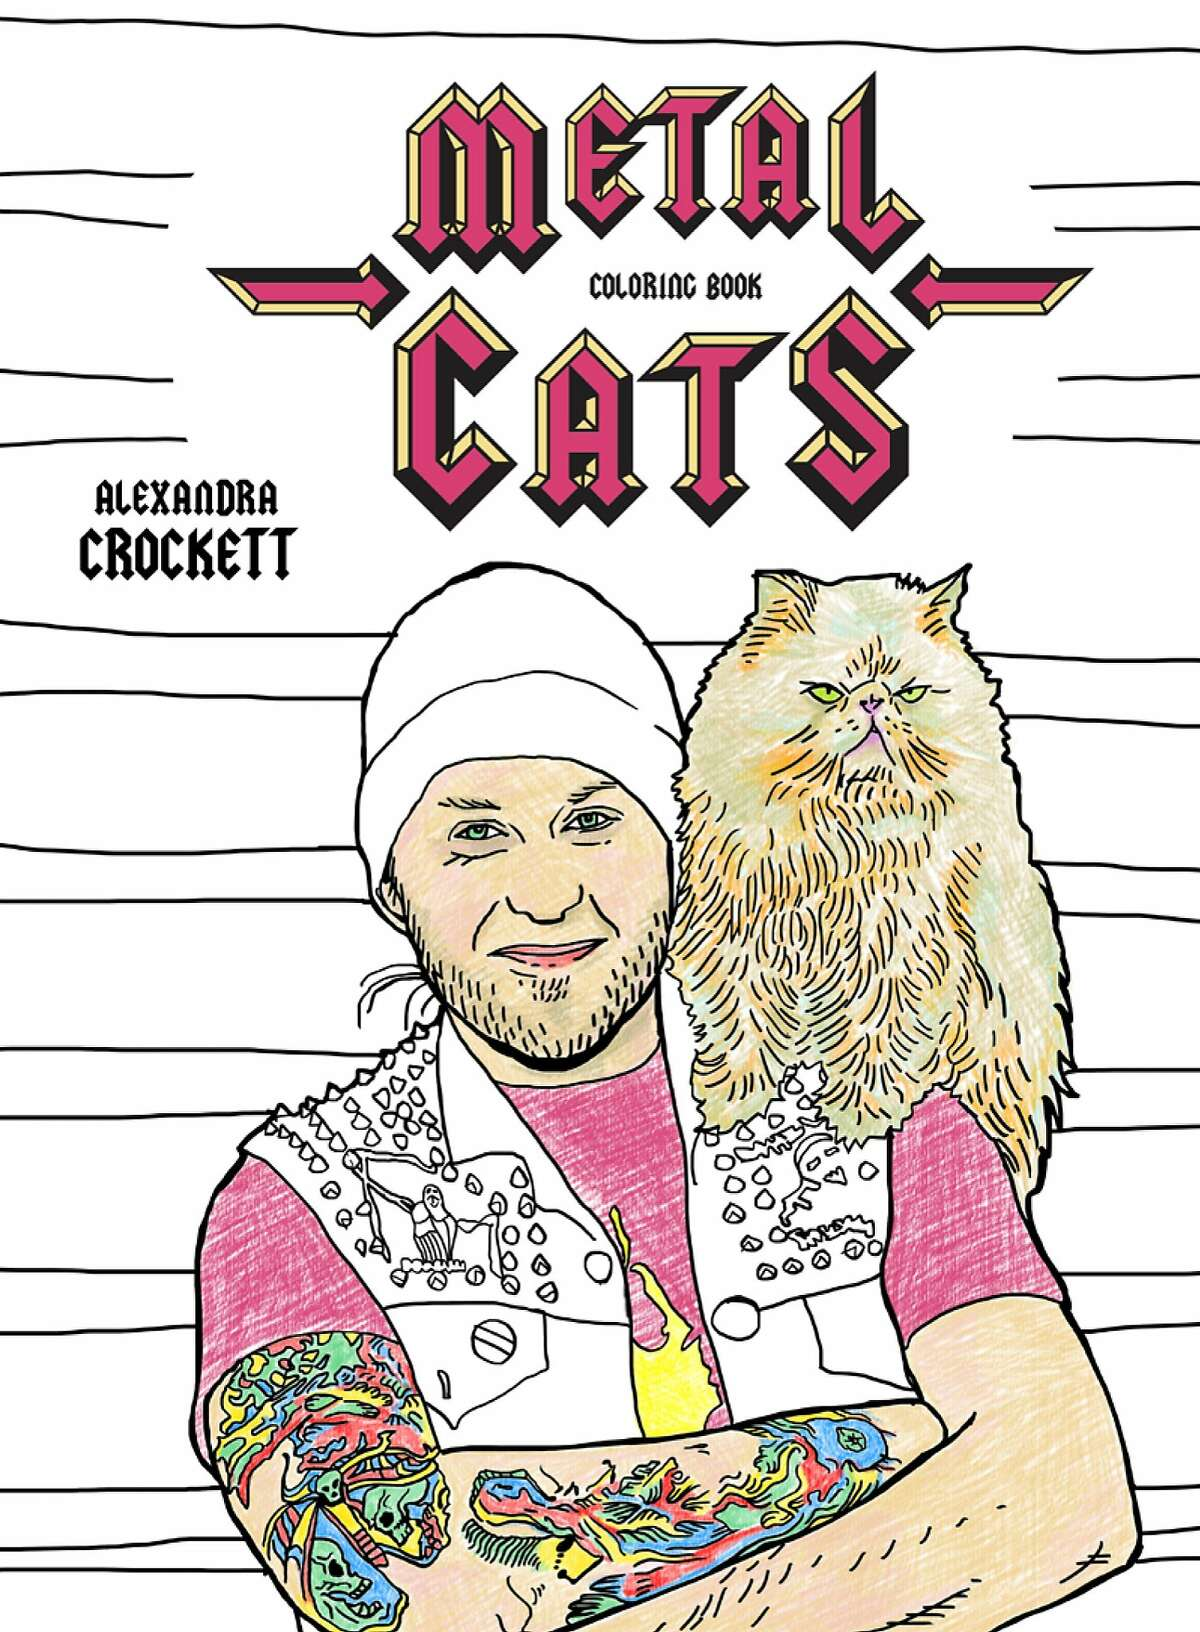 �Metal Cats Coloring Book,� (Powerhouse Books, 2017, $9.99), which capitalizes on the adult coloring book trend, is based a book of the same title, �Metal Cats,� (Powerhouse Books, 2014) � a series of photo portraits by Alexandra Crockett of 30 West Coast heavy metal musicians and their cats. The book was meant to show the softer, human side of heavy metal musicians as they posed with their pets, and to bring attention to no-kill animal shelters. Illustrations for the coloring book are by Chuck Gonzales.